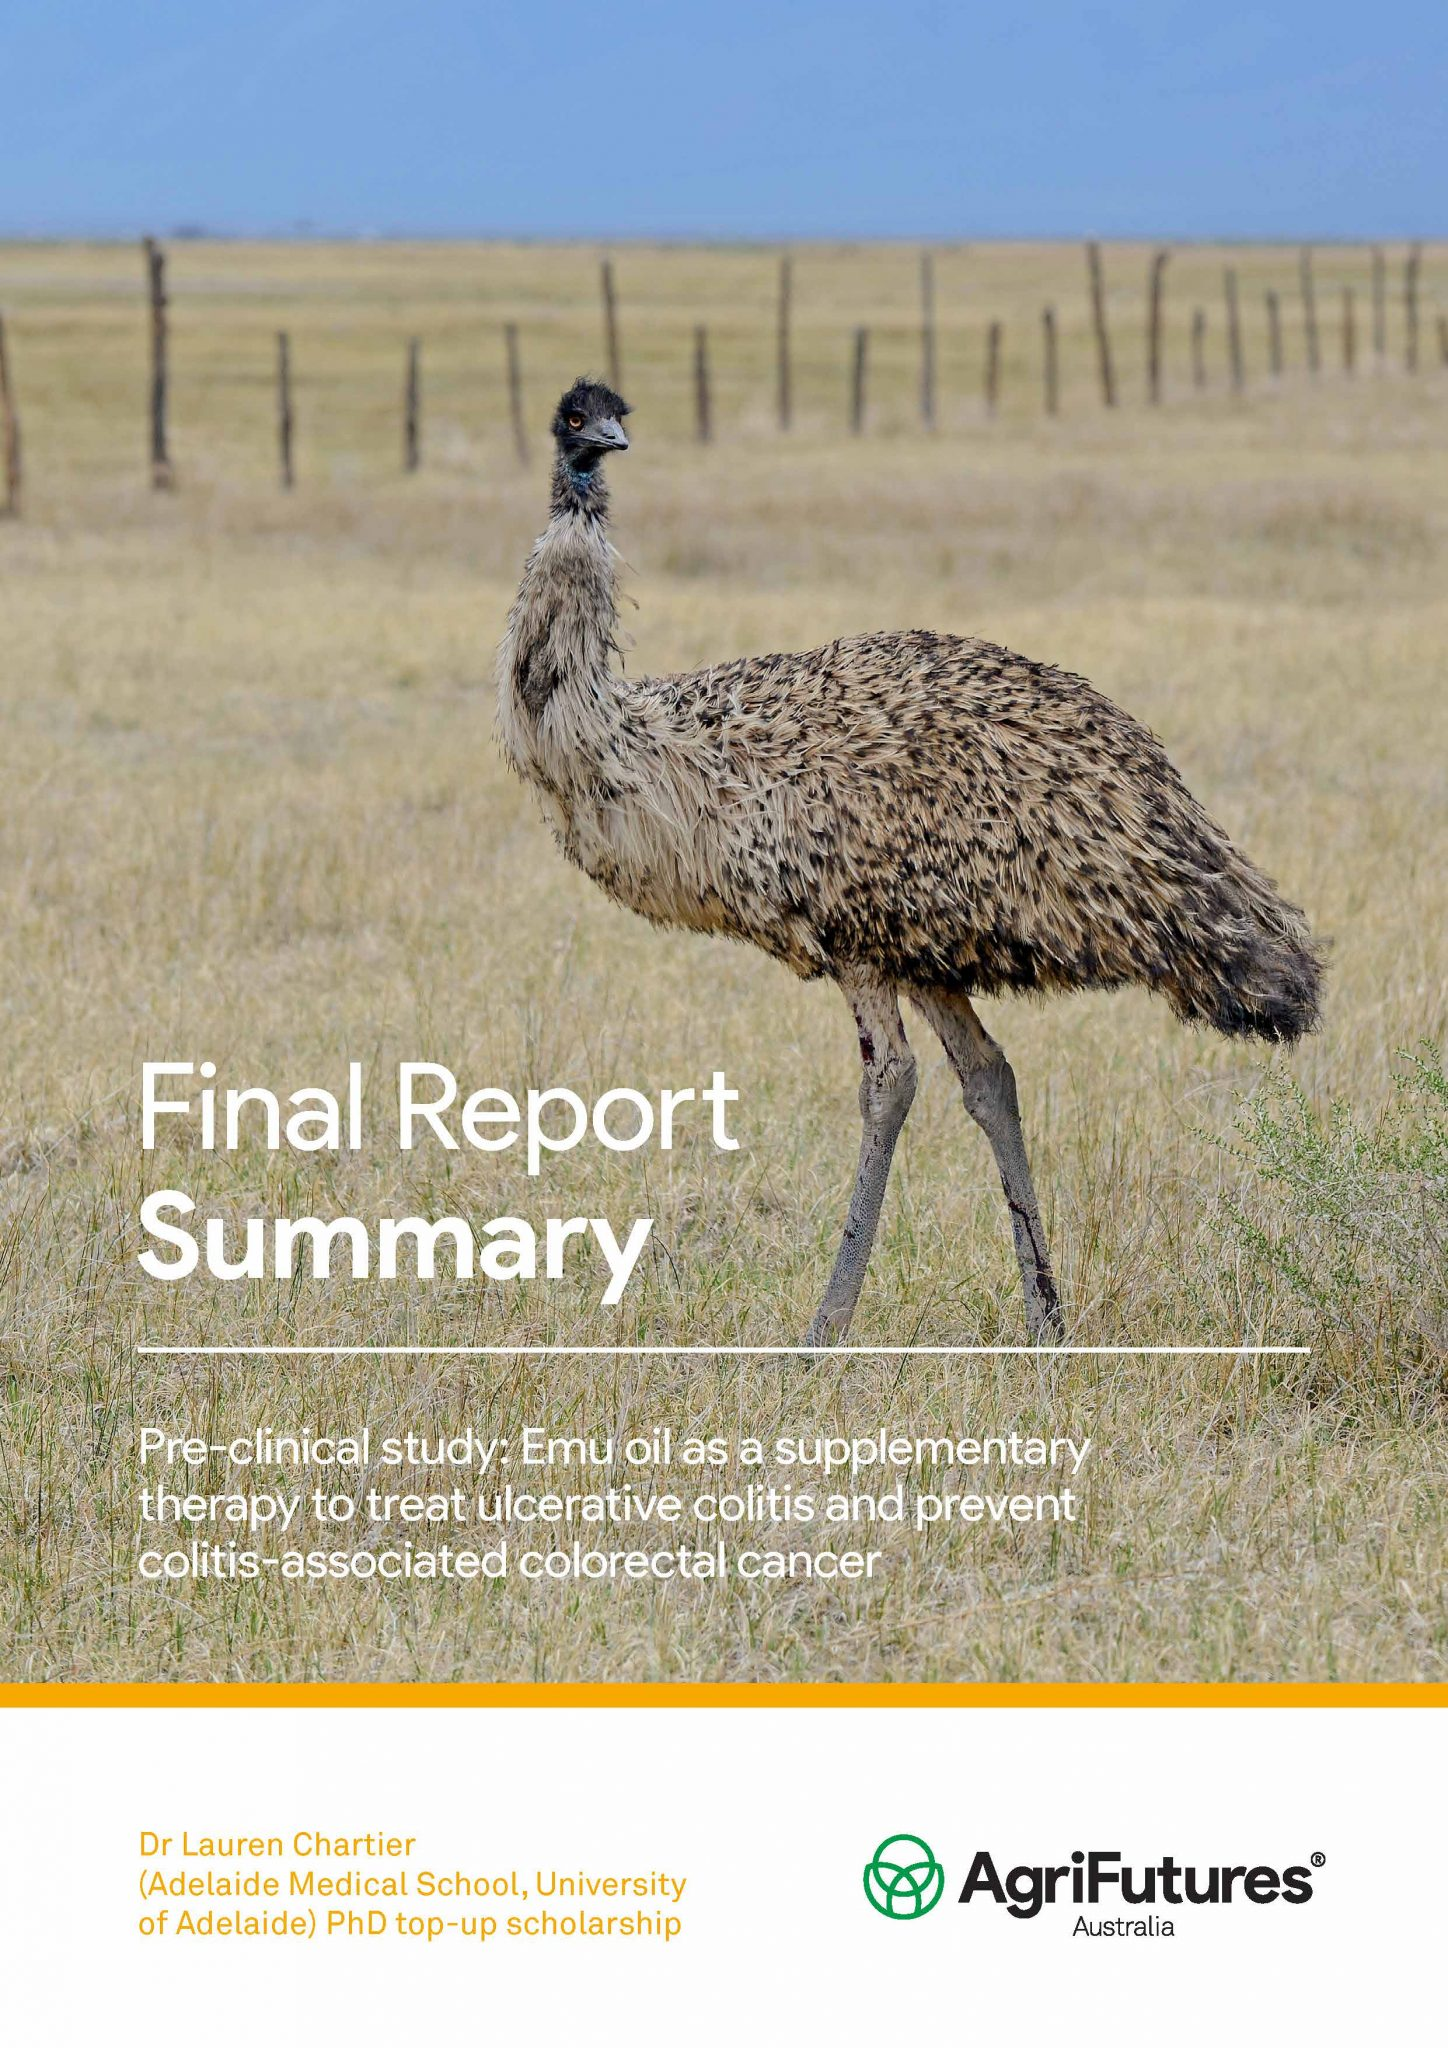 Final Report Summary: Pre-clinical study: Emu oil as a supplementary therapy to treat ulcerative colitis and prevent colitis-associated colorectal cancer - image